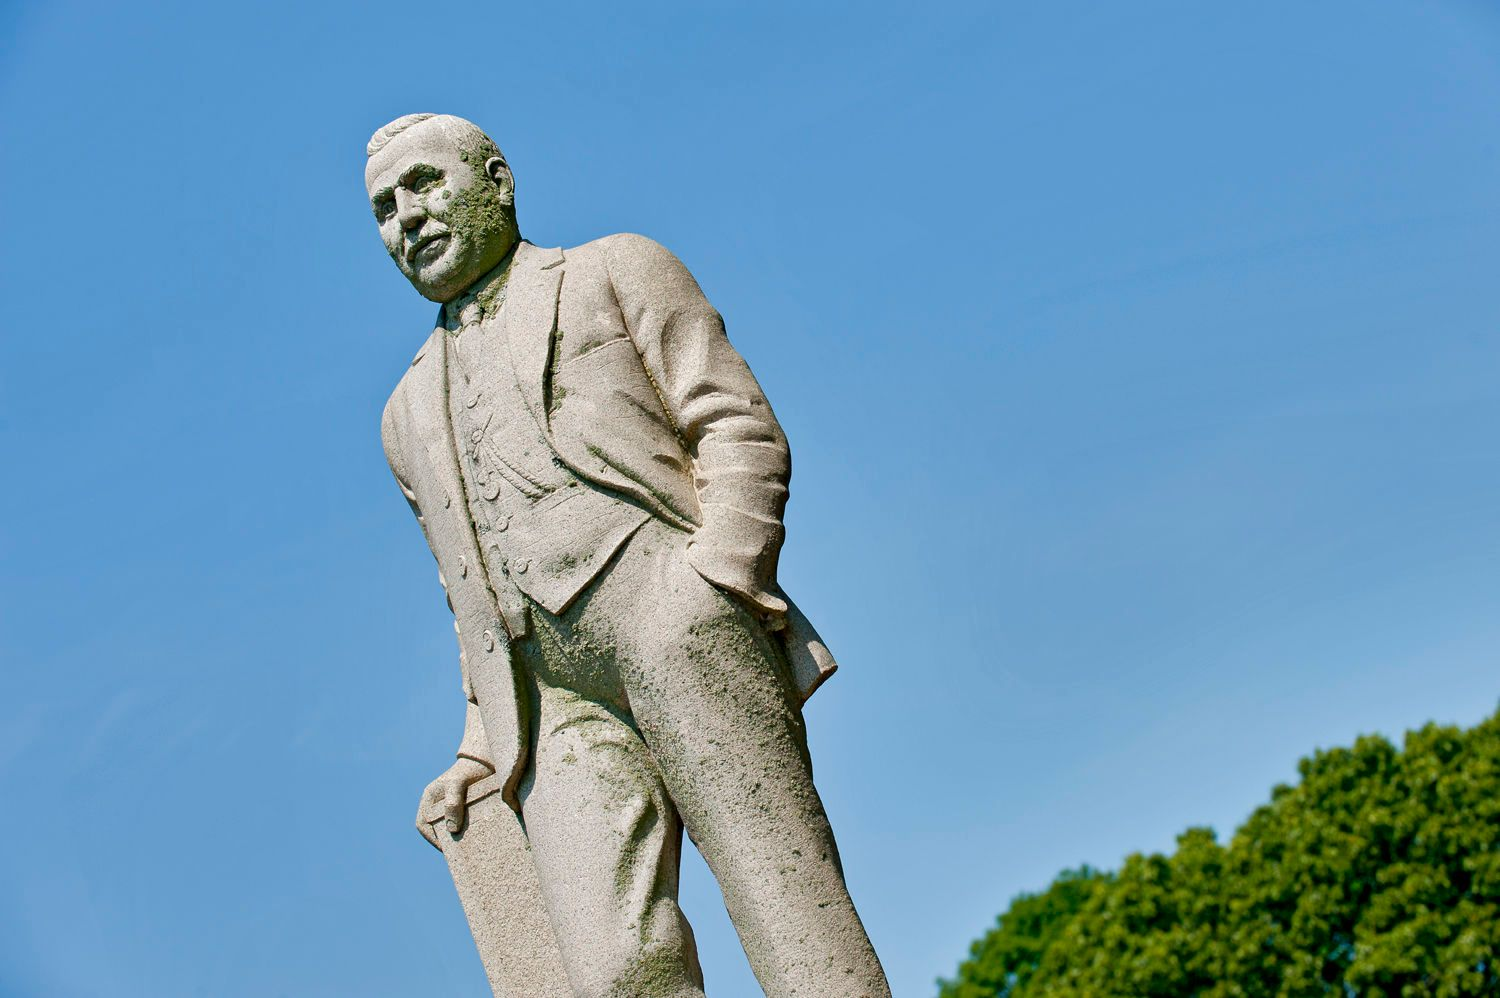 Statue of a Man Standing in Full Formal Attire